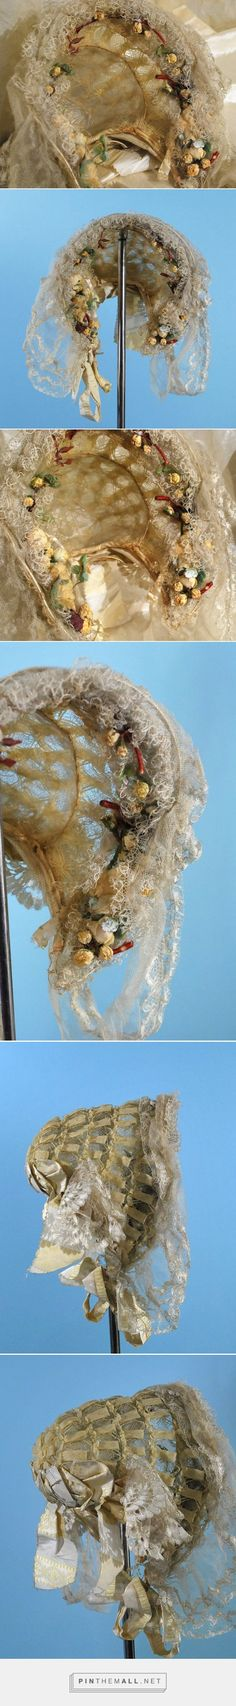 1850 60 Fancy Ladies Crin Bonnet w Silk Blonde Lace Floral Trim RARE Survivor | eBay - created via http://pinthemall.net